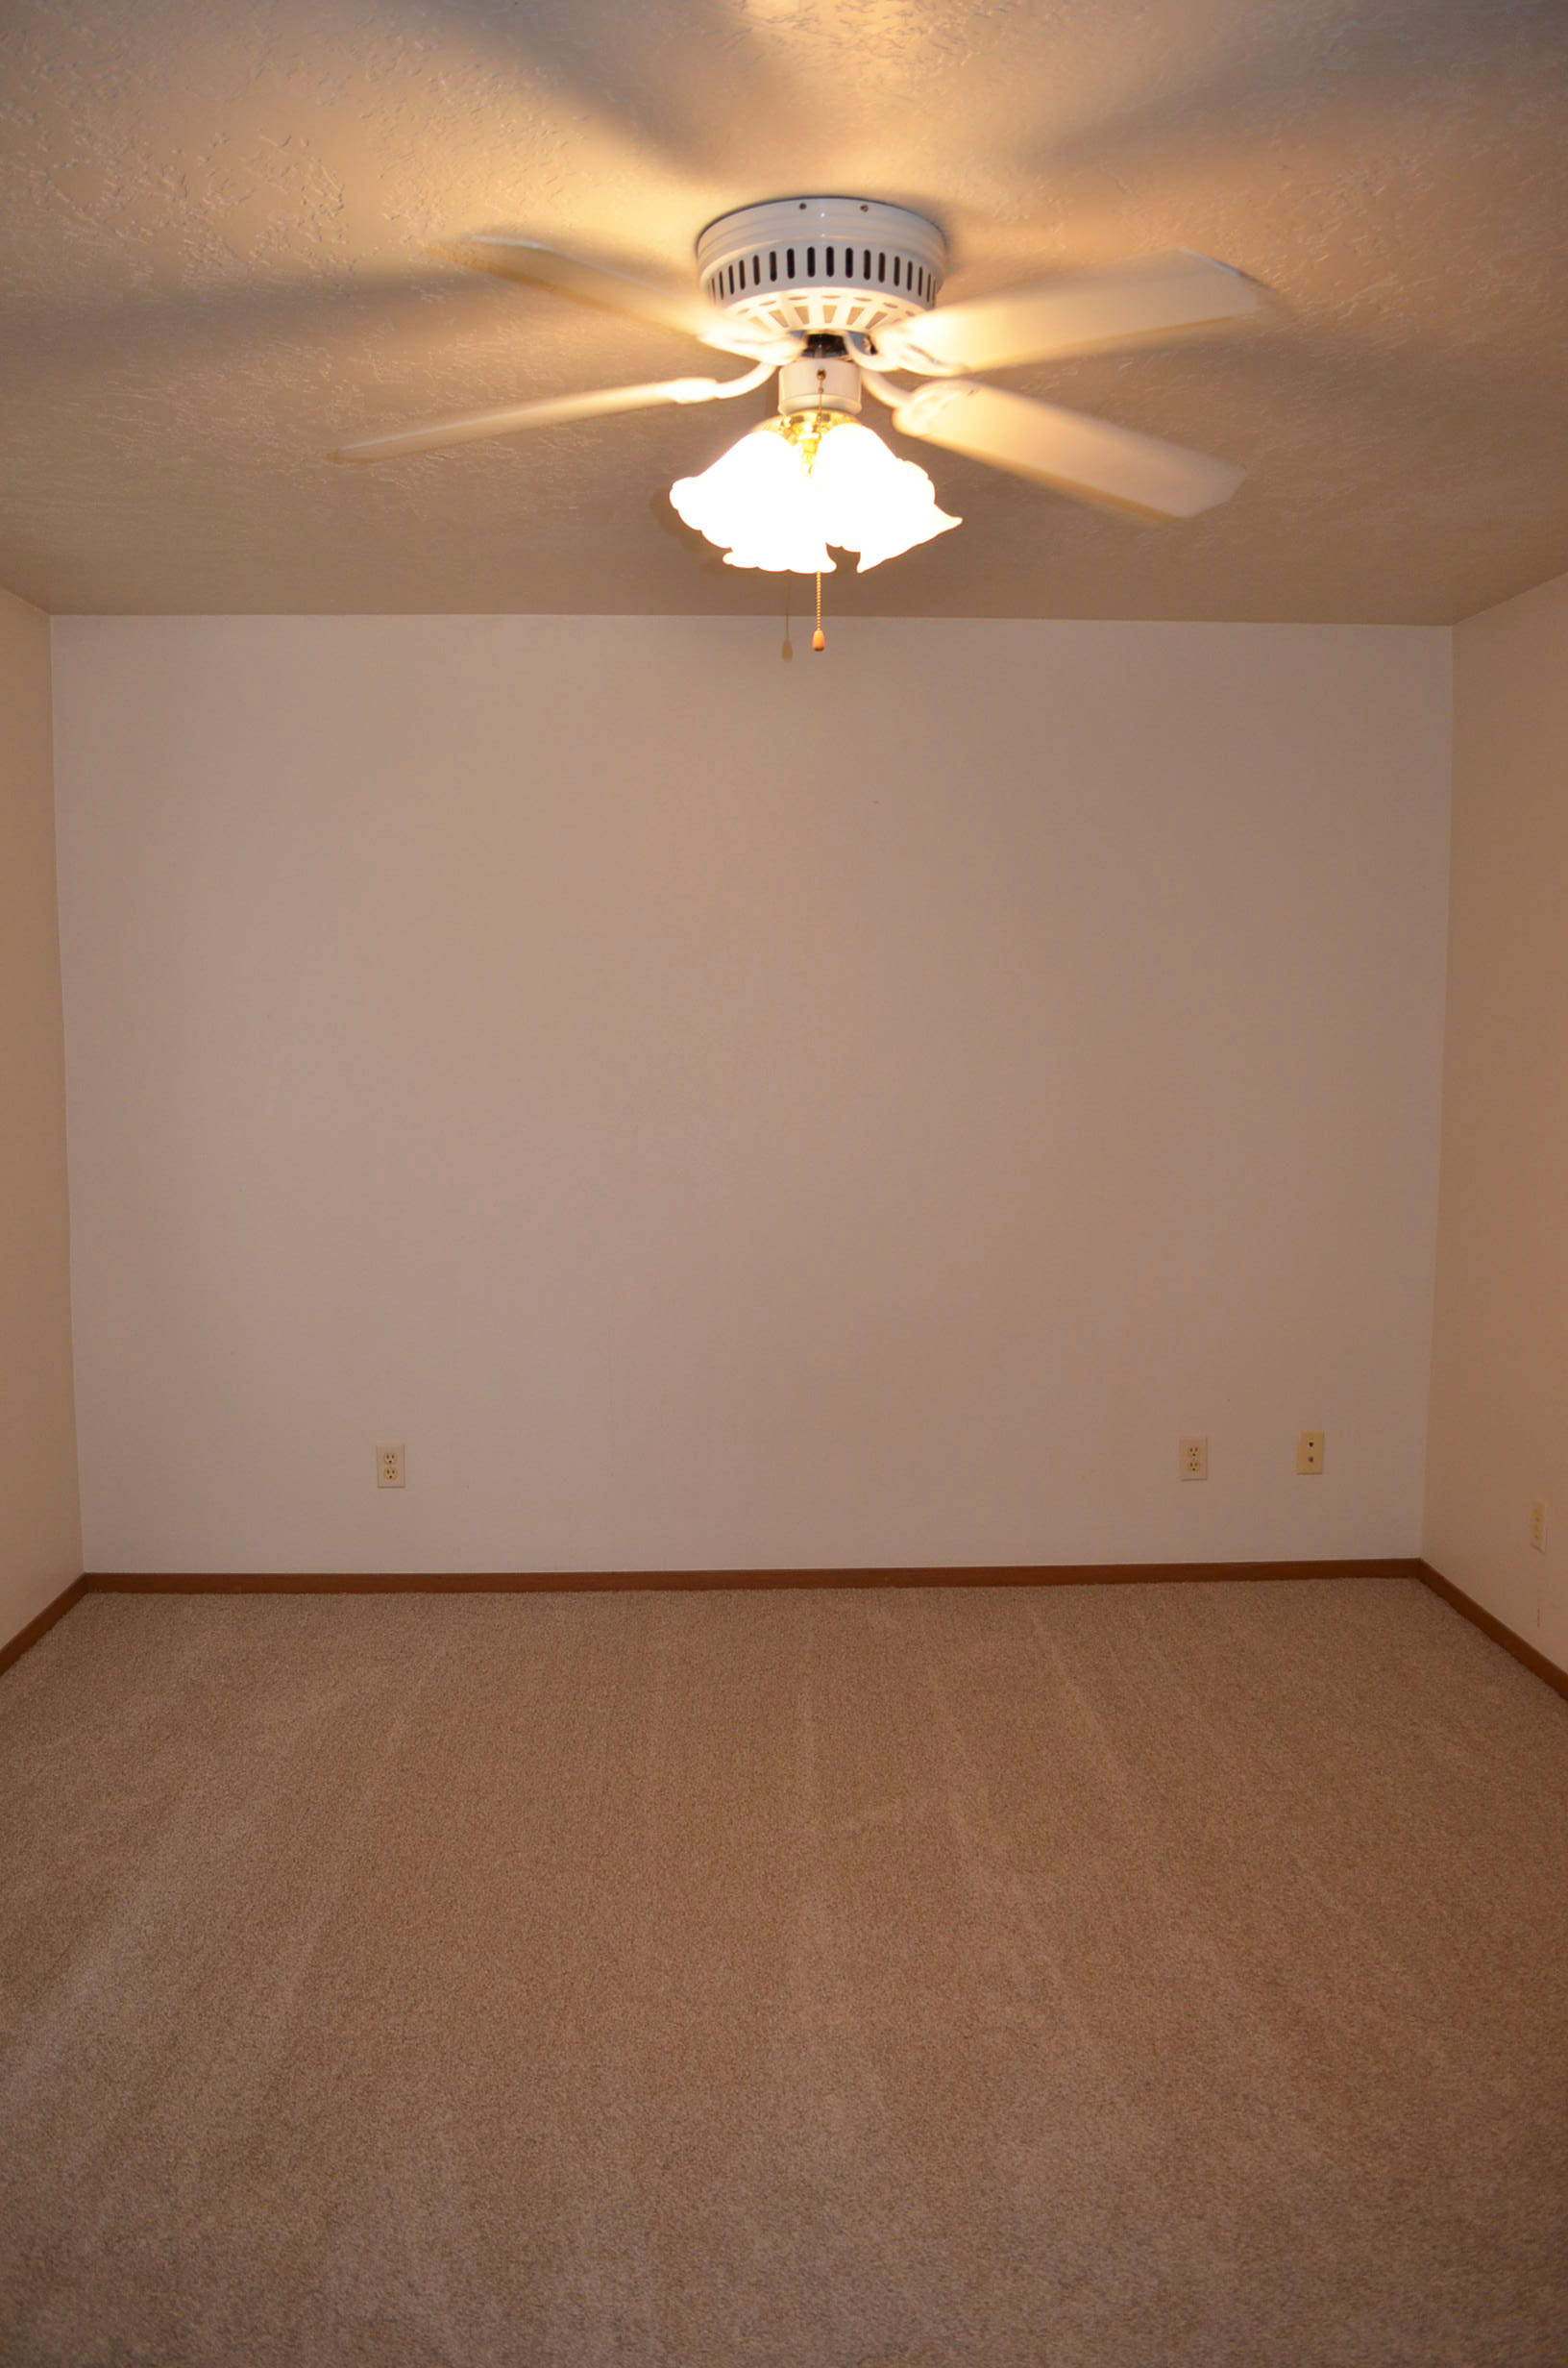 Rooms: Residential Rental Property